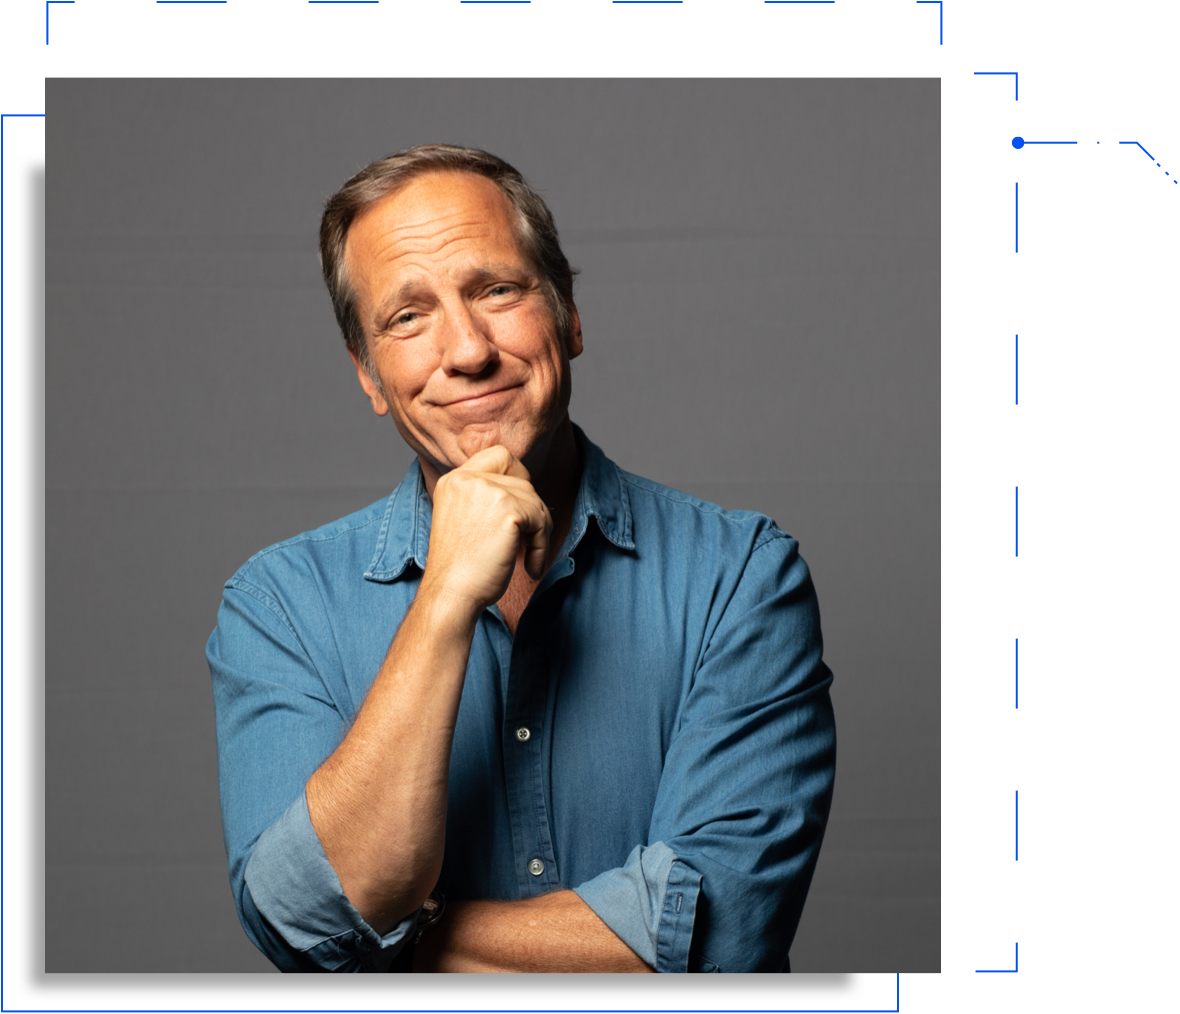 Pantheon Welcomes Special Guest… Mike Rowe!